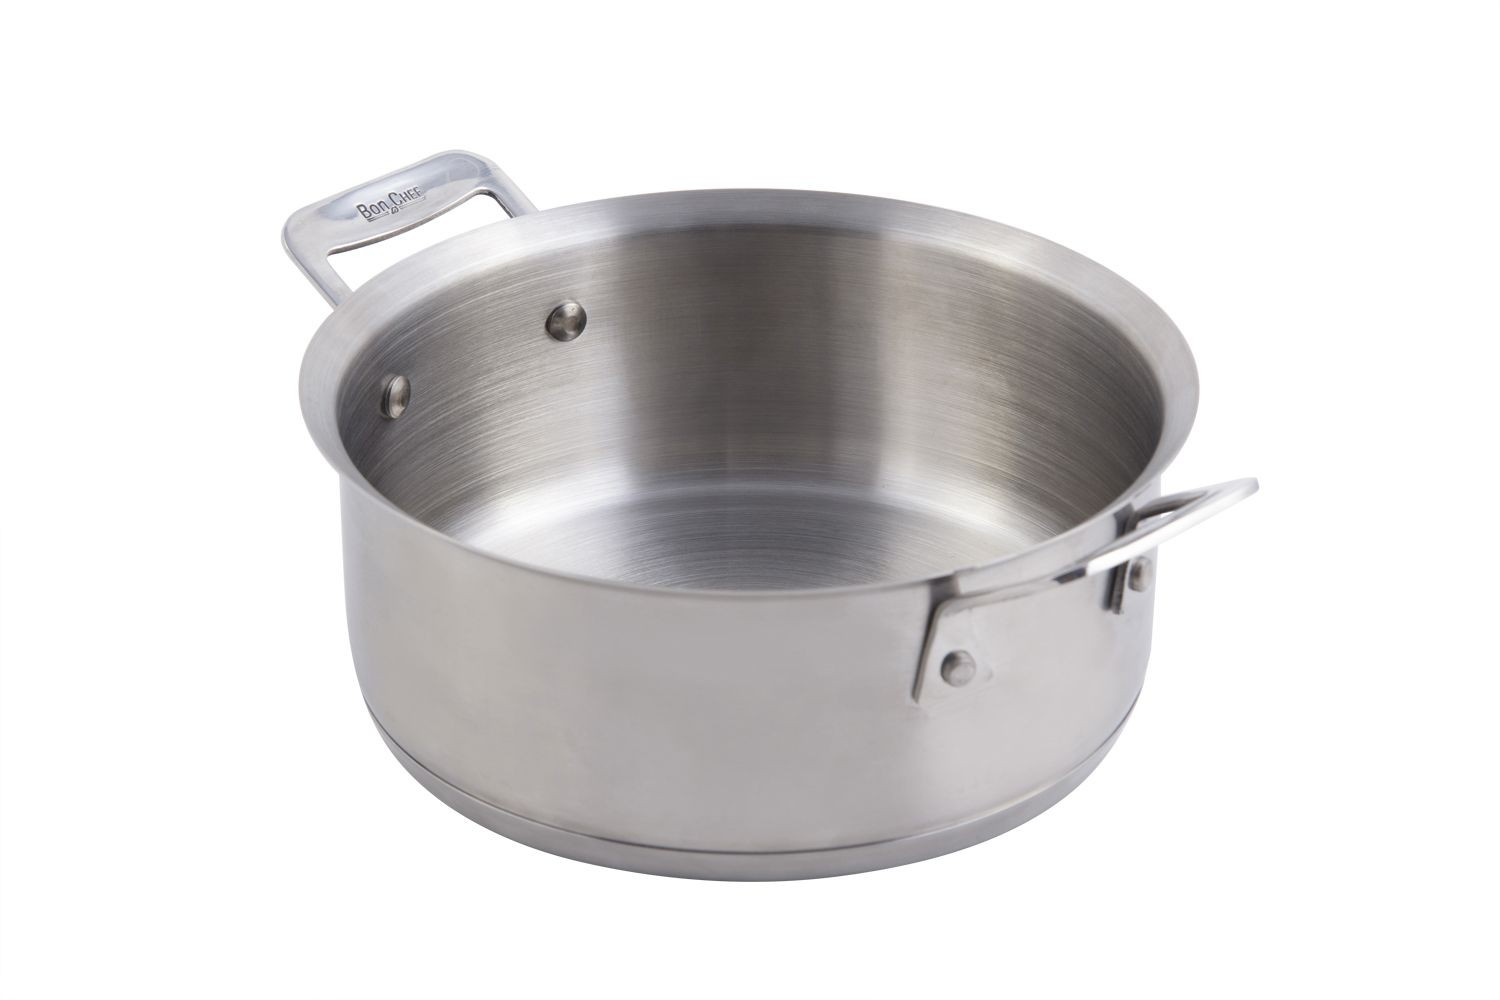 Bon Chef 60000 Cucina Stainless Steel Casserole Dish with Lid, 3 Qt.